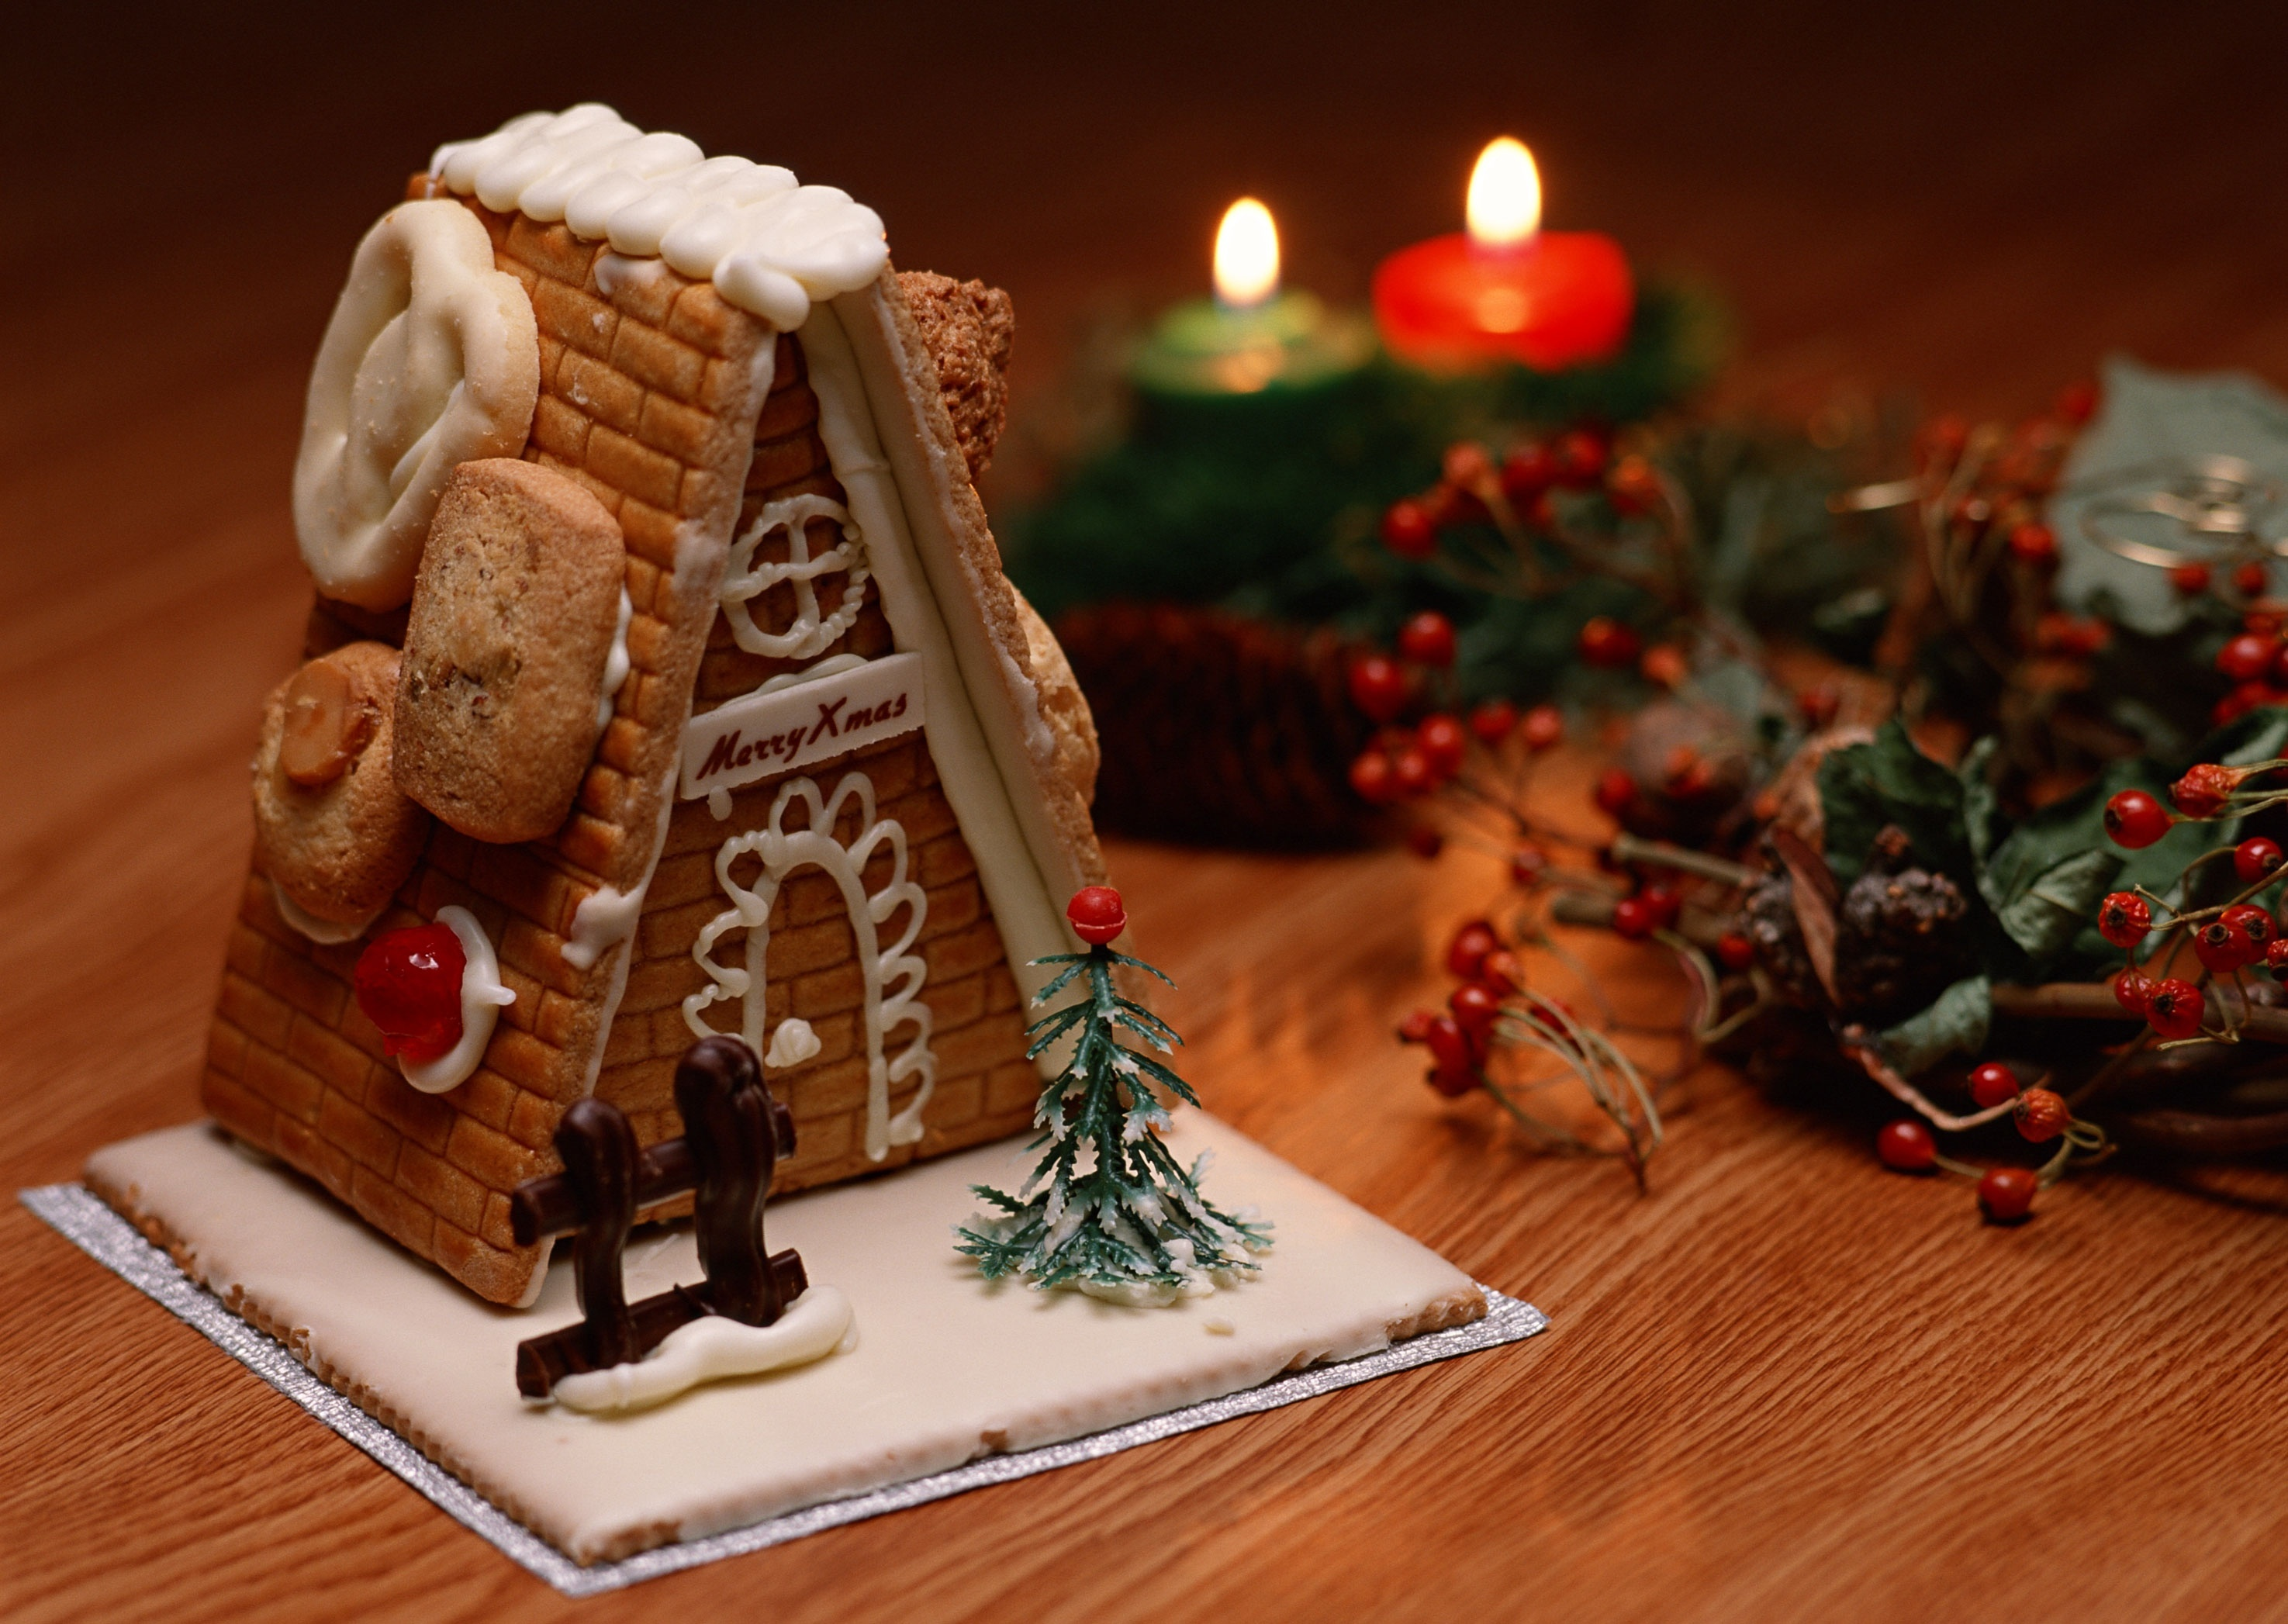 desserts Christmas Cookies Candles HD Wallpaper